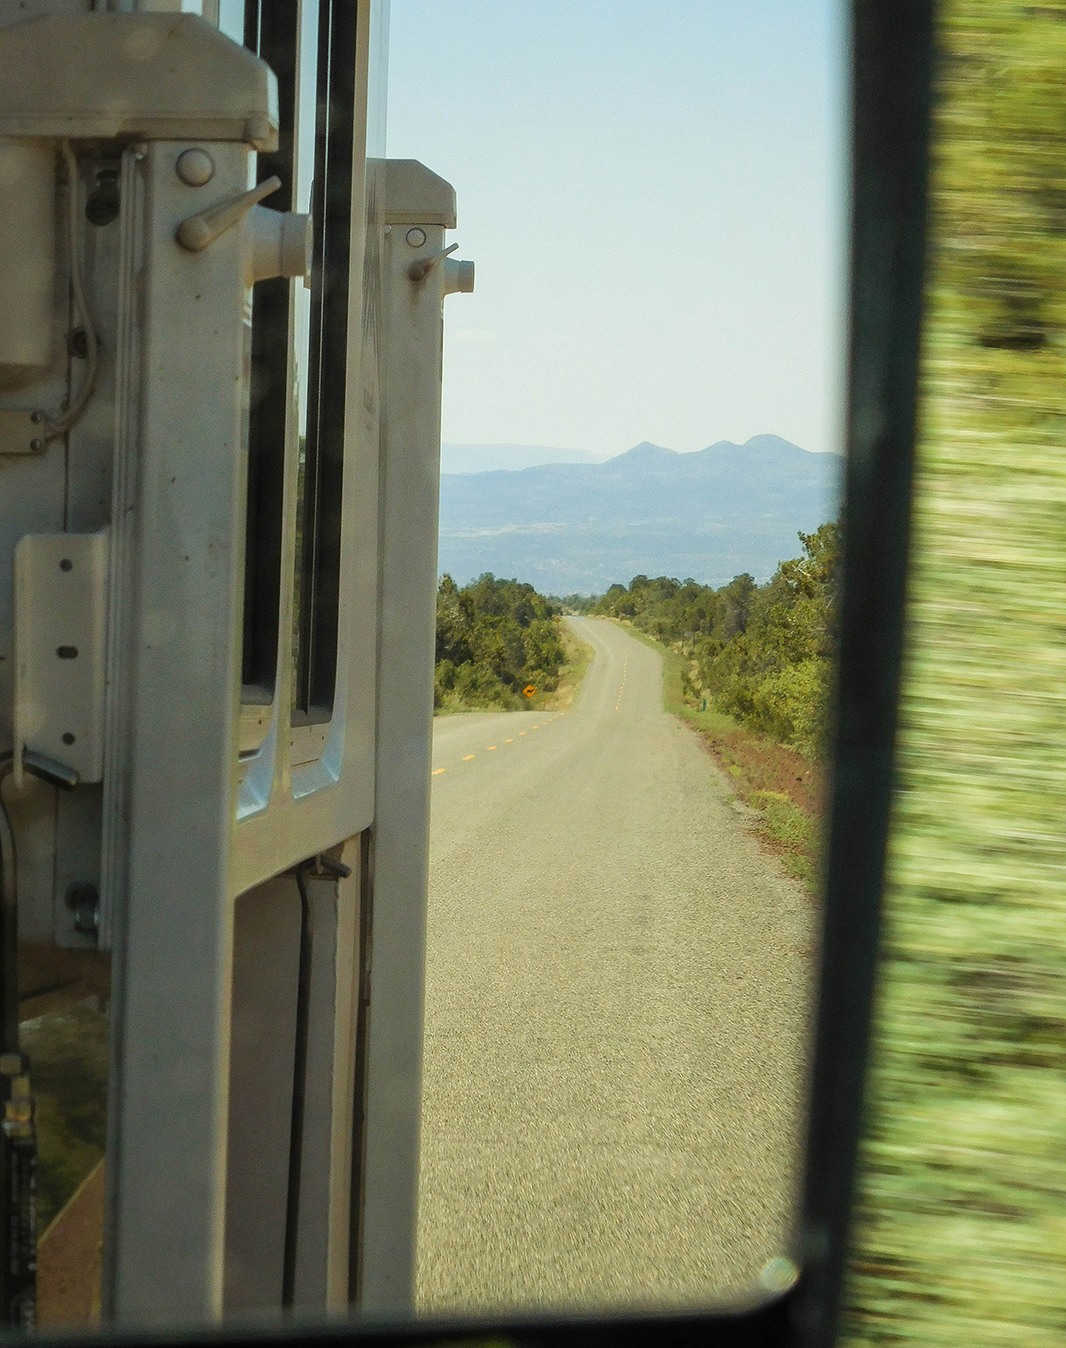 Joni looks back to the Verde Valley and the mountains beyond.